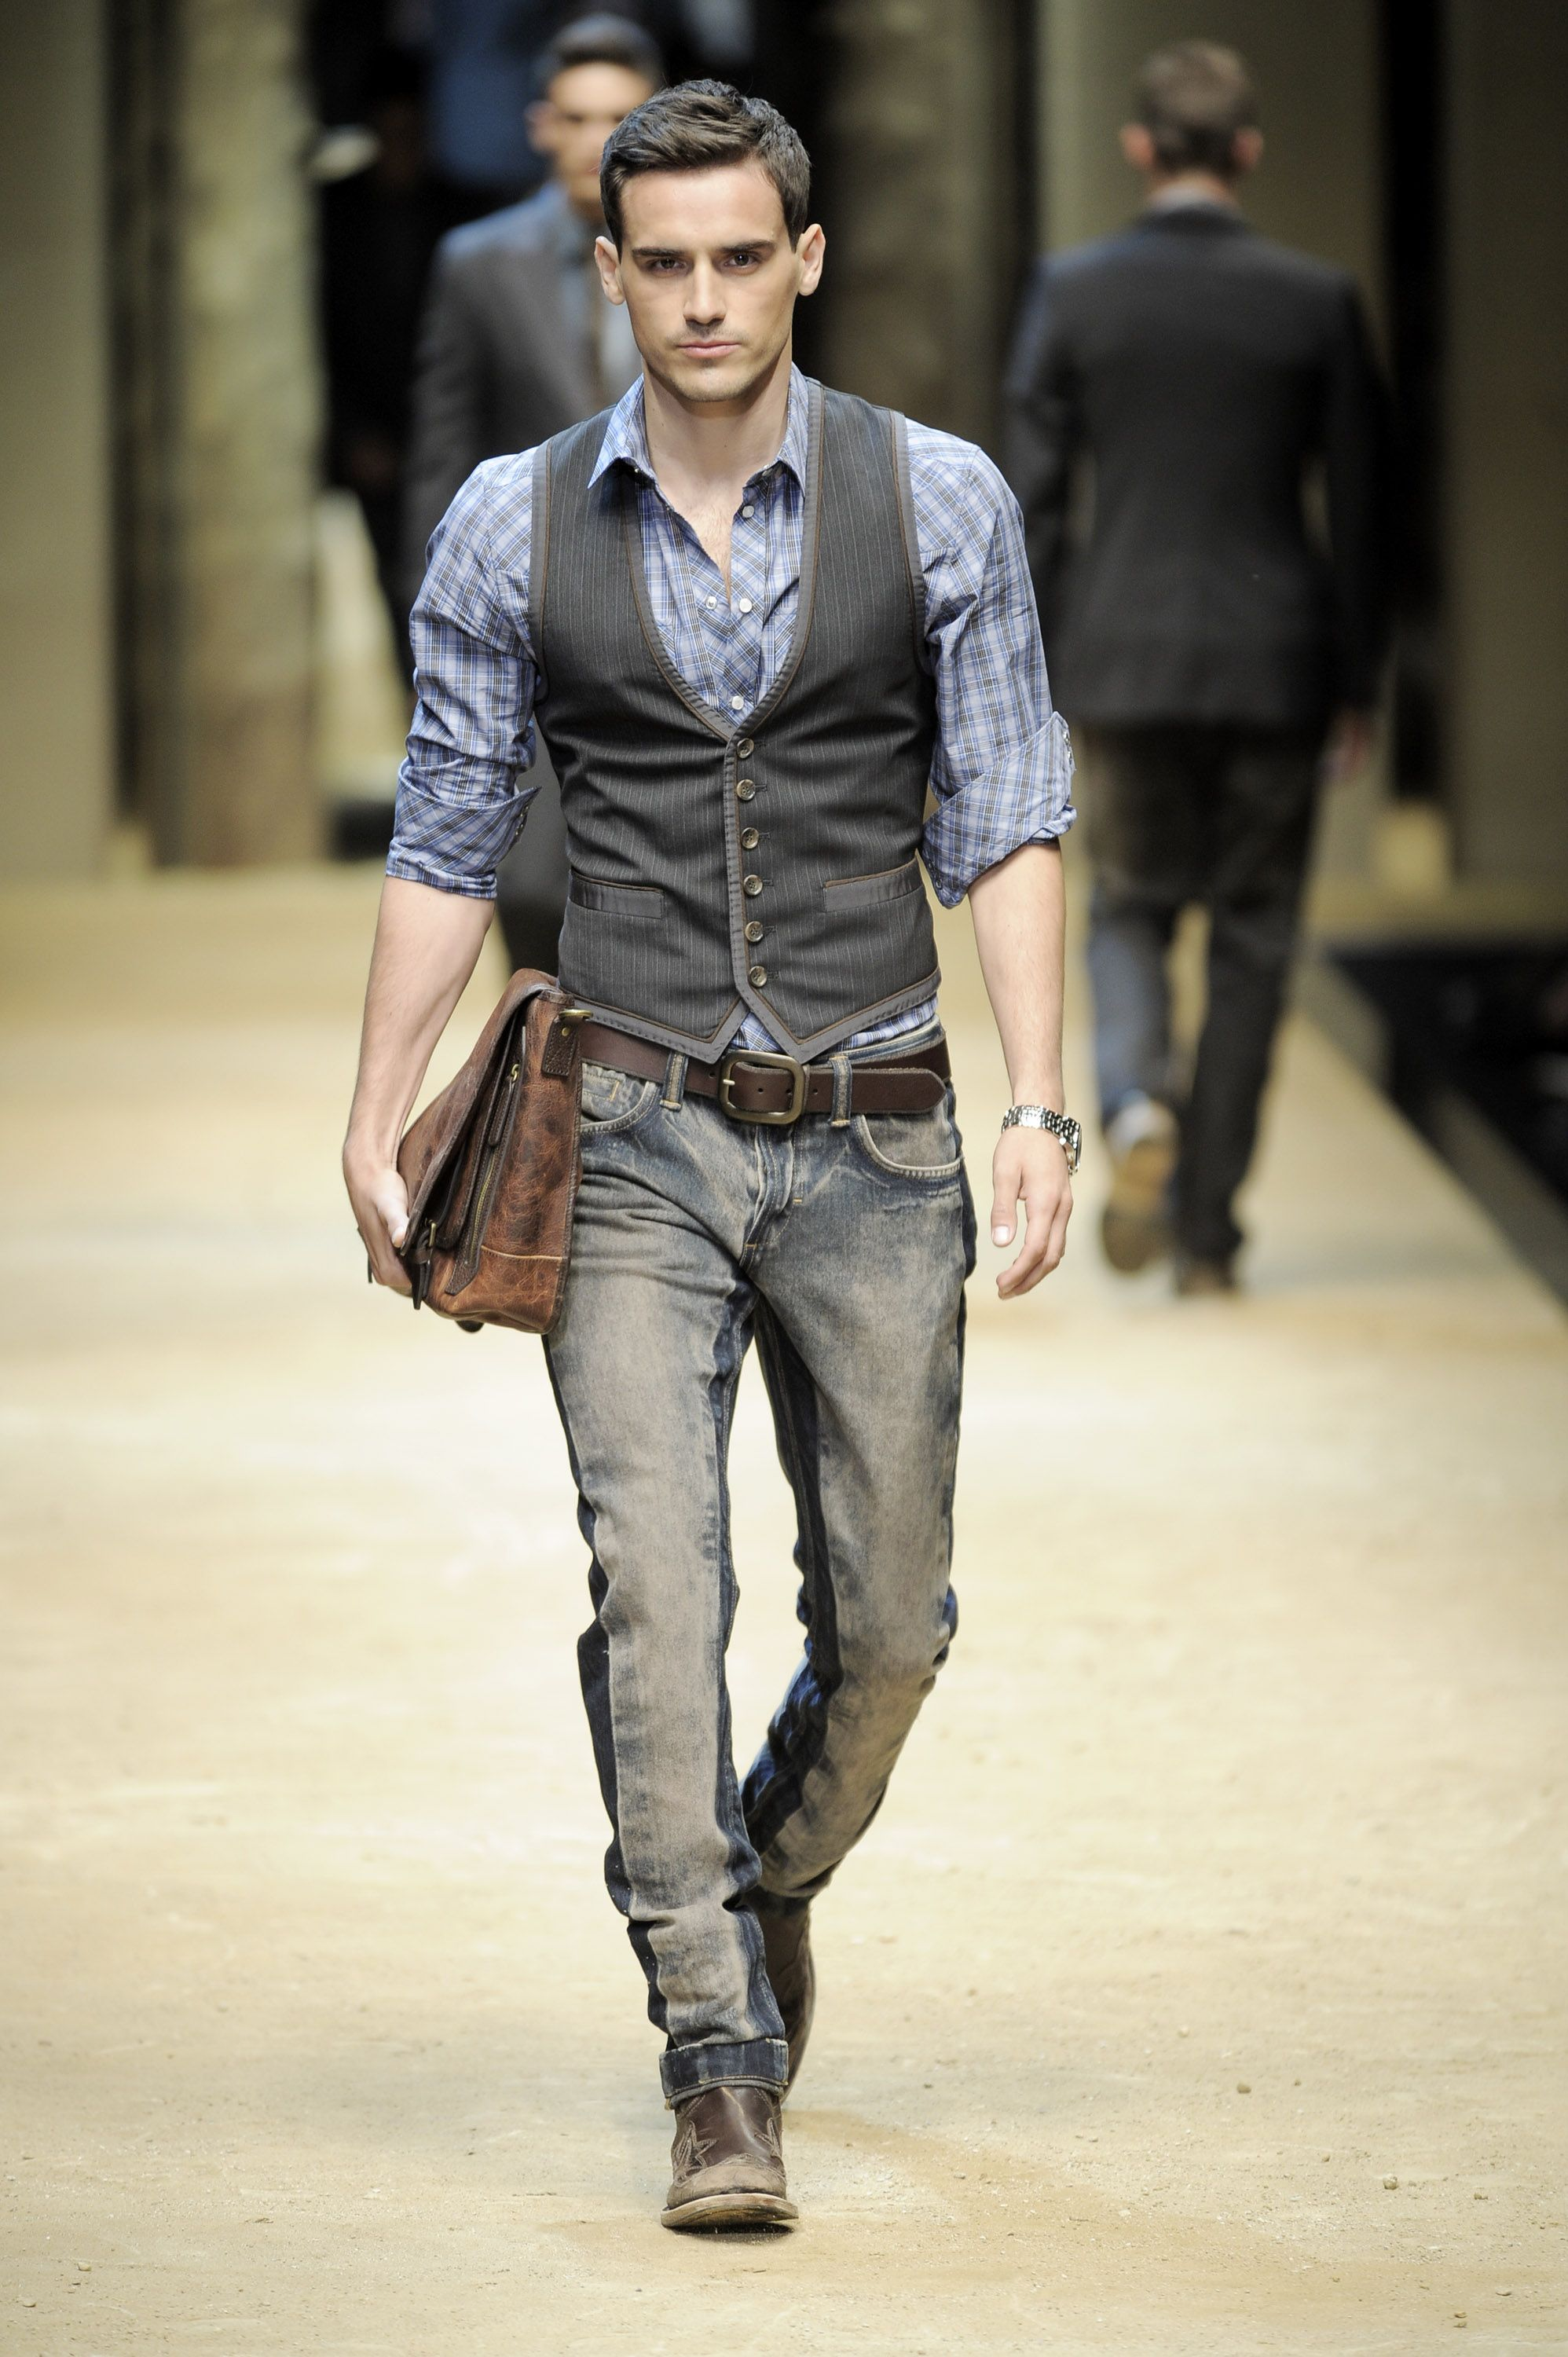 Men's Casual Fashion - Time For Change | Vests, Style and Men's ...